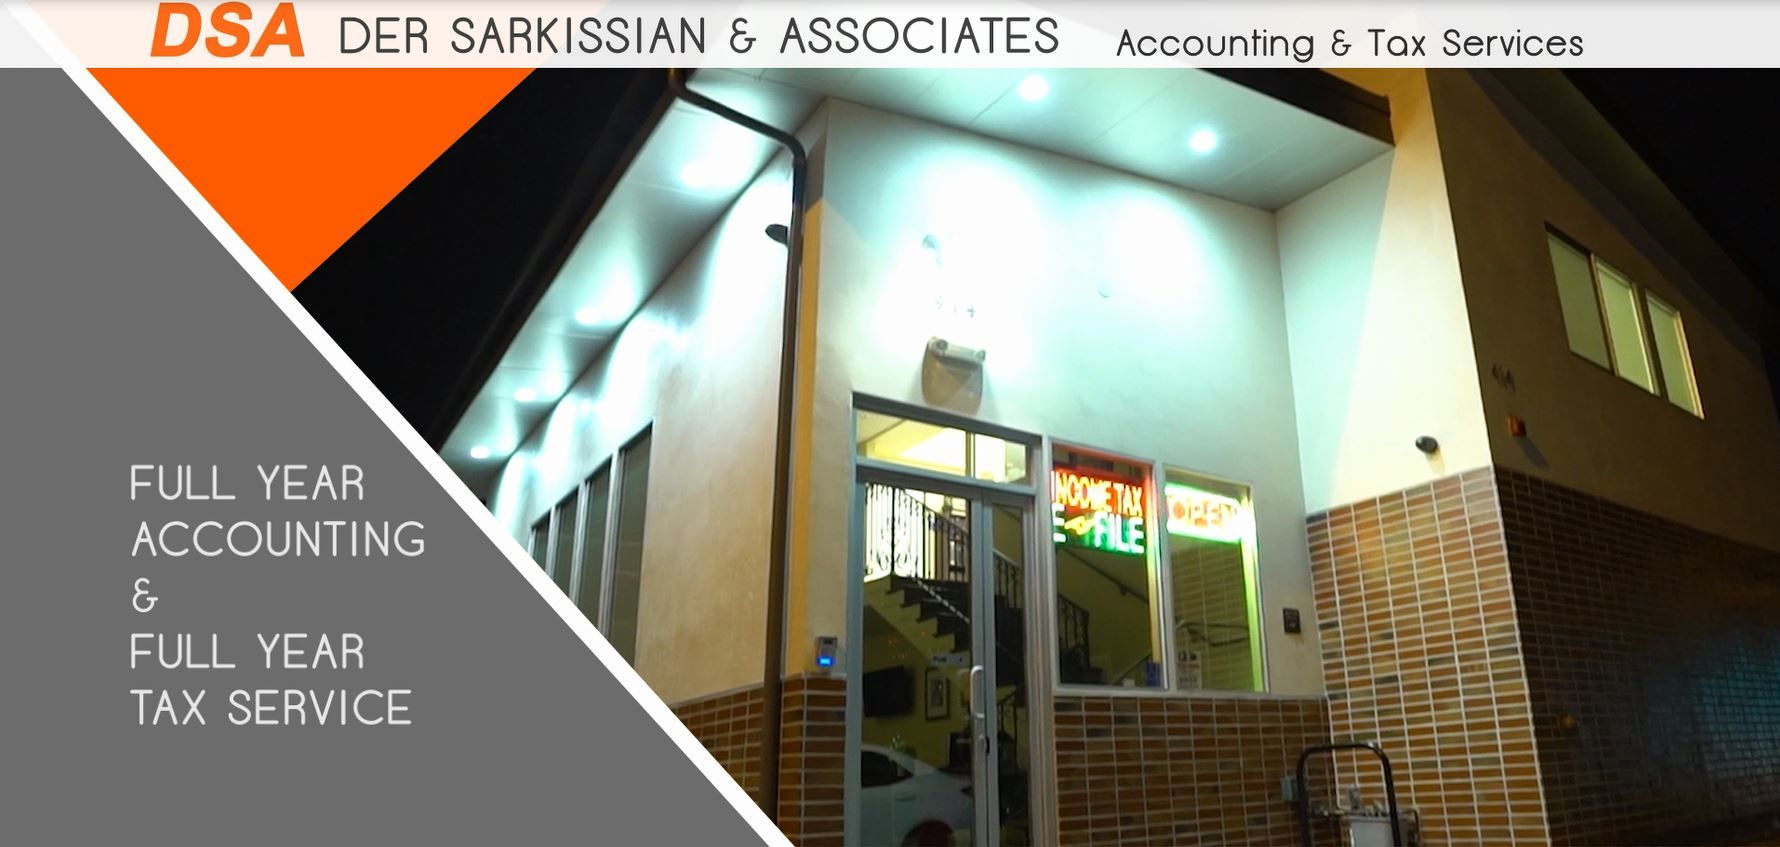 Tax preparation services for business entities and